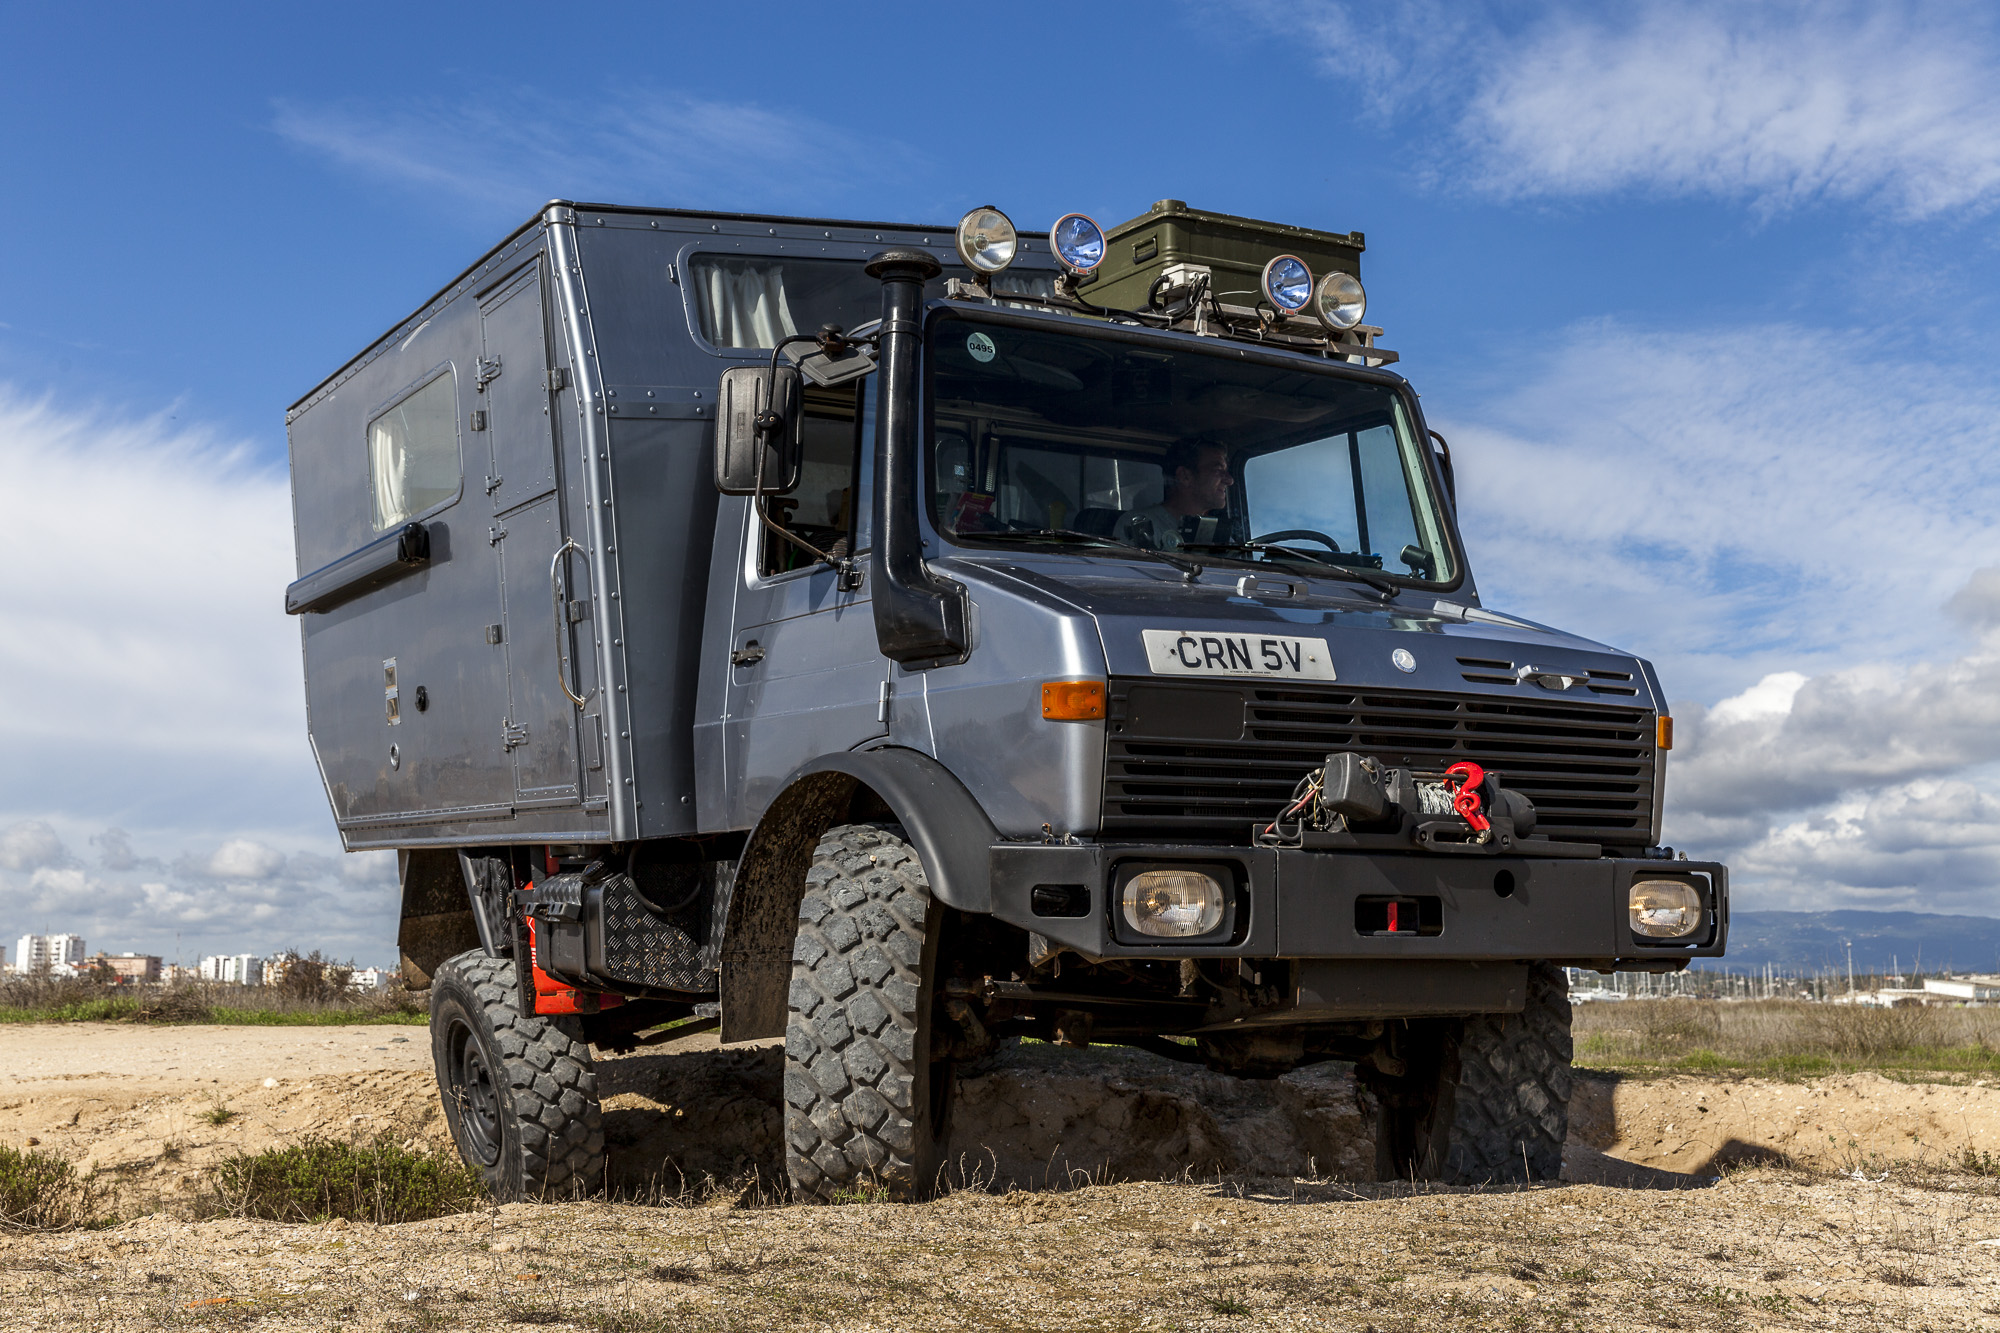 Featured Vehicle: Mowgli the Unimog - Expedition Portal